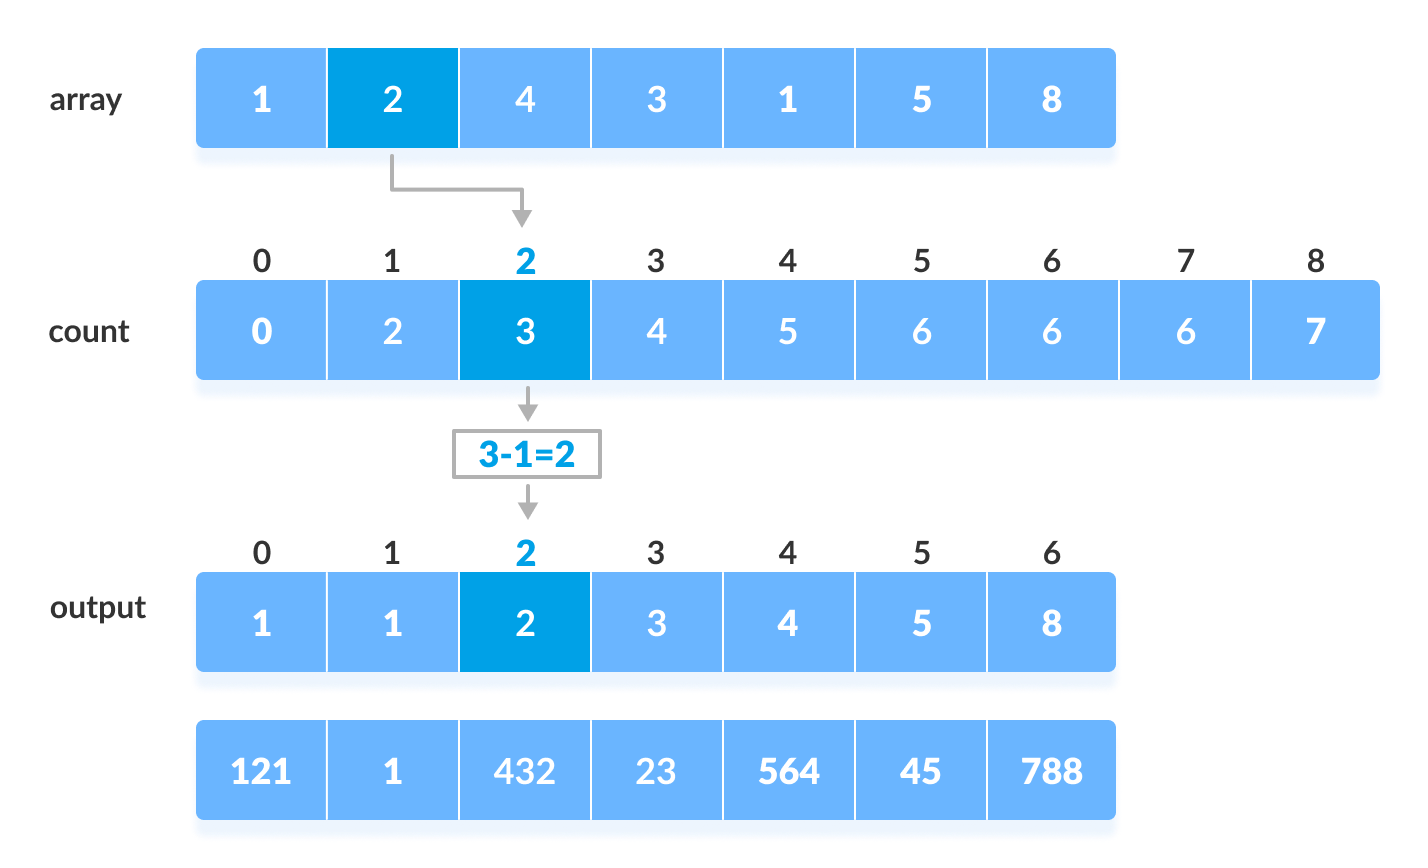 Radix Sort working with Counting Sort as intermediate step